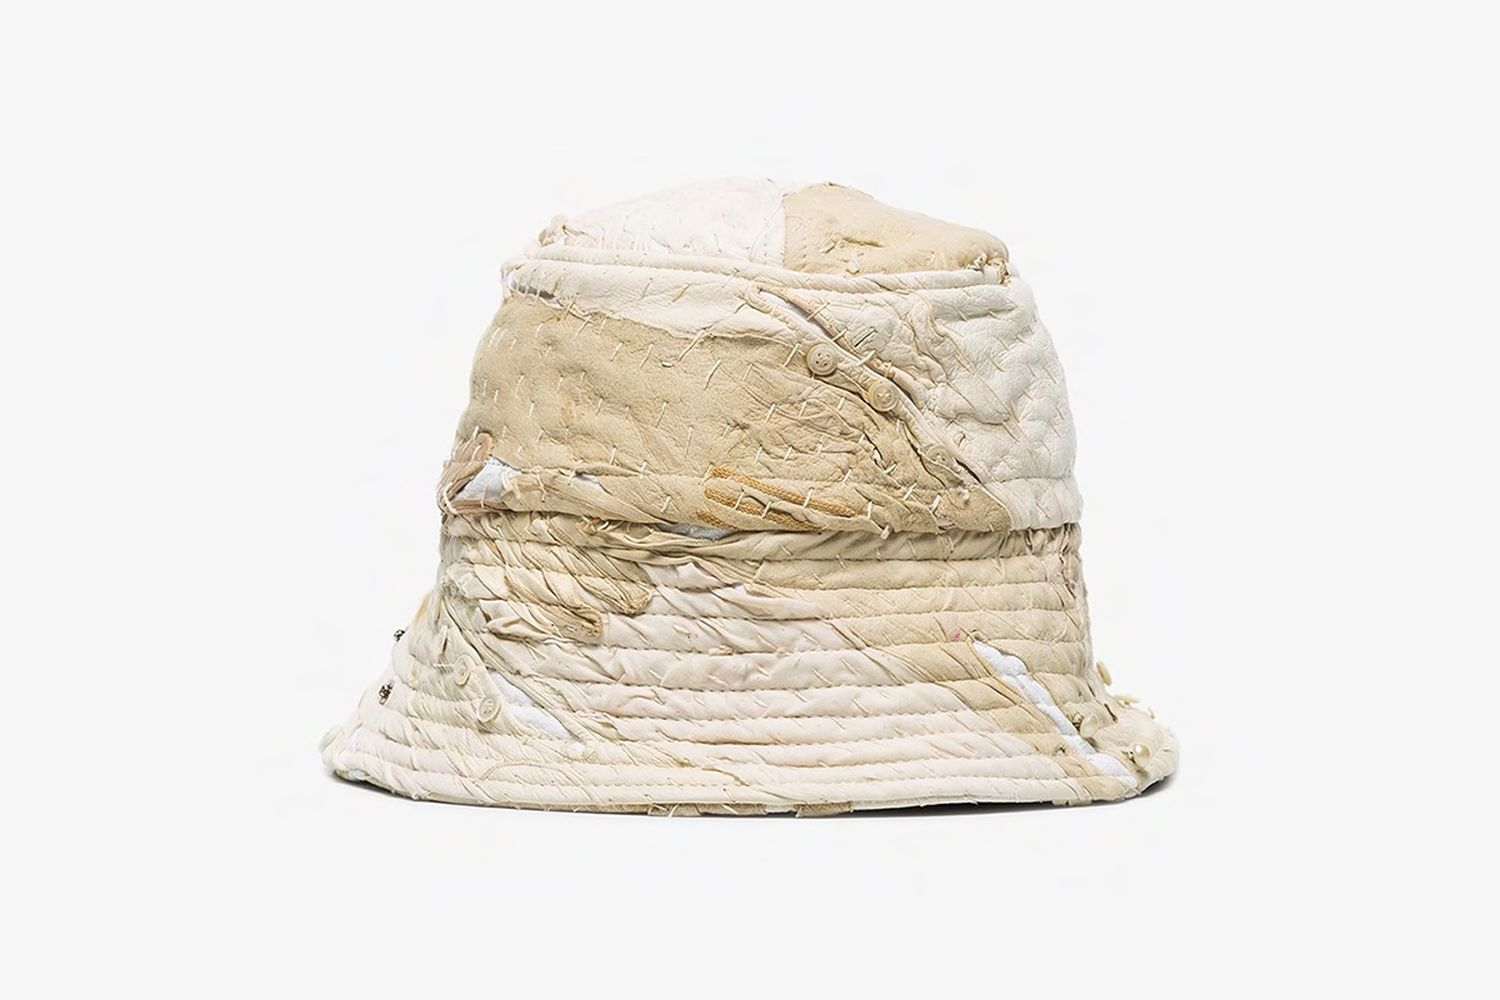 19th Century Leather Bucket Hat